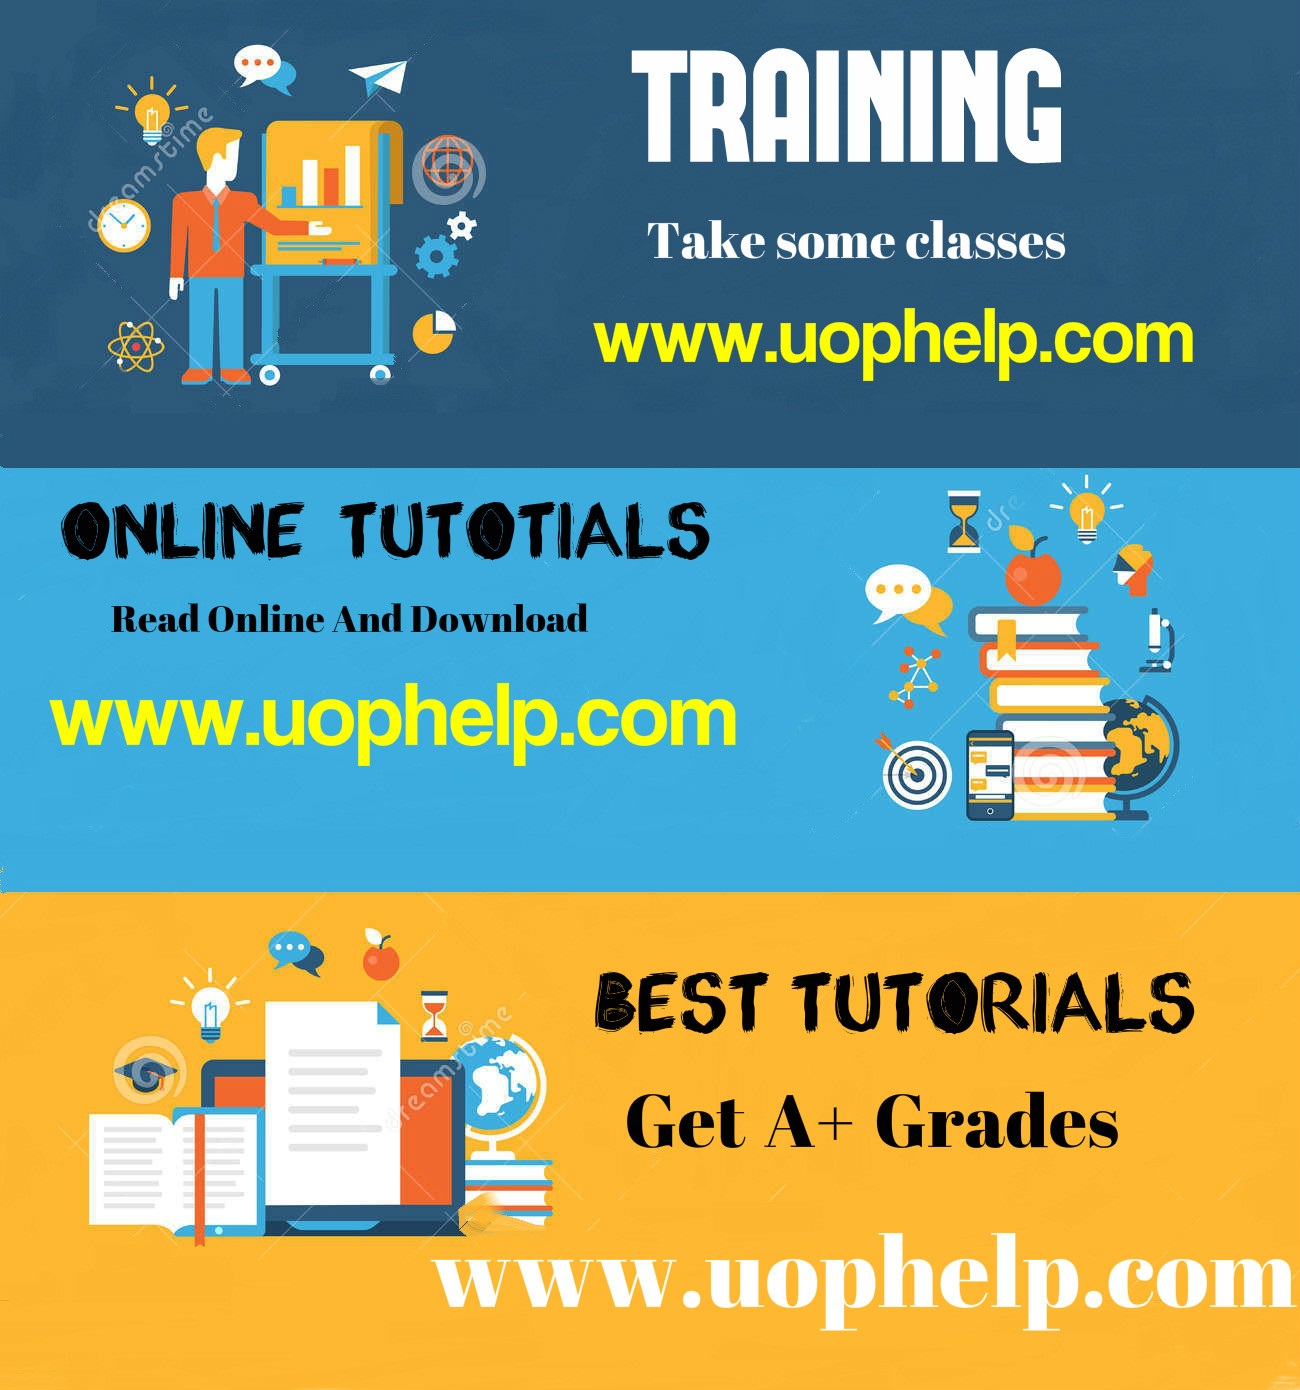 pol 201 expert tutor uophelp on  amending the u s constitution the formal process of amending the constitution is cumbersome and slow while this fact explains why relatively few